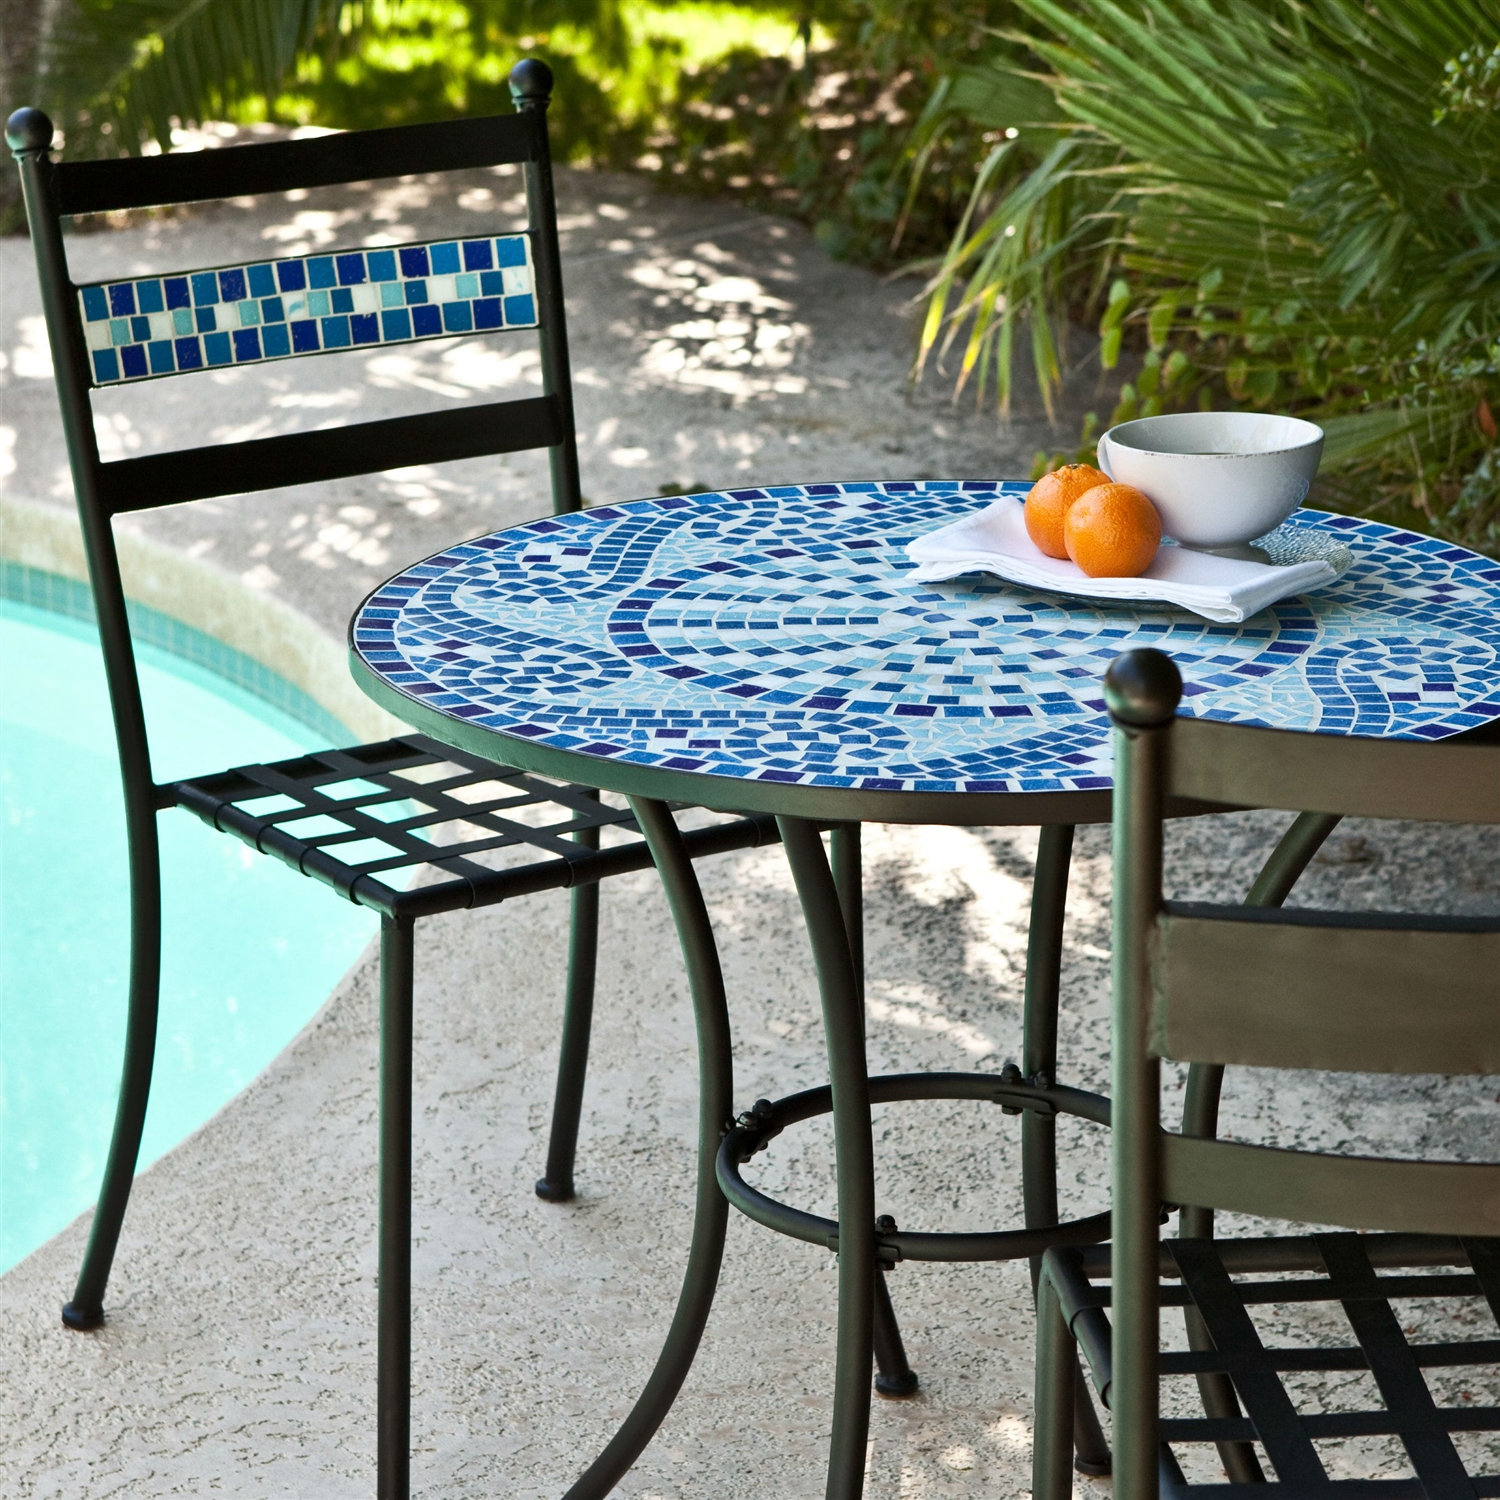 outdoor 3 piece aqua blue mosaic tiles patio furniture bistro set - Garden Furniture 3 Piece